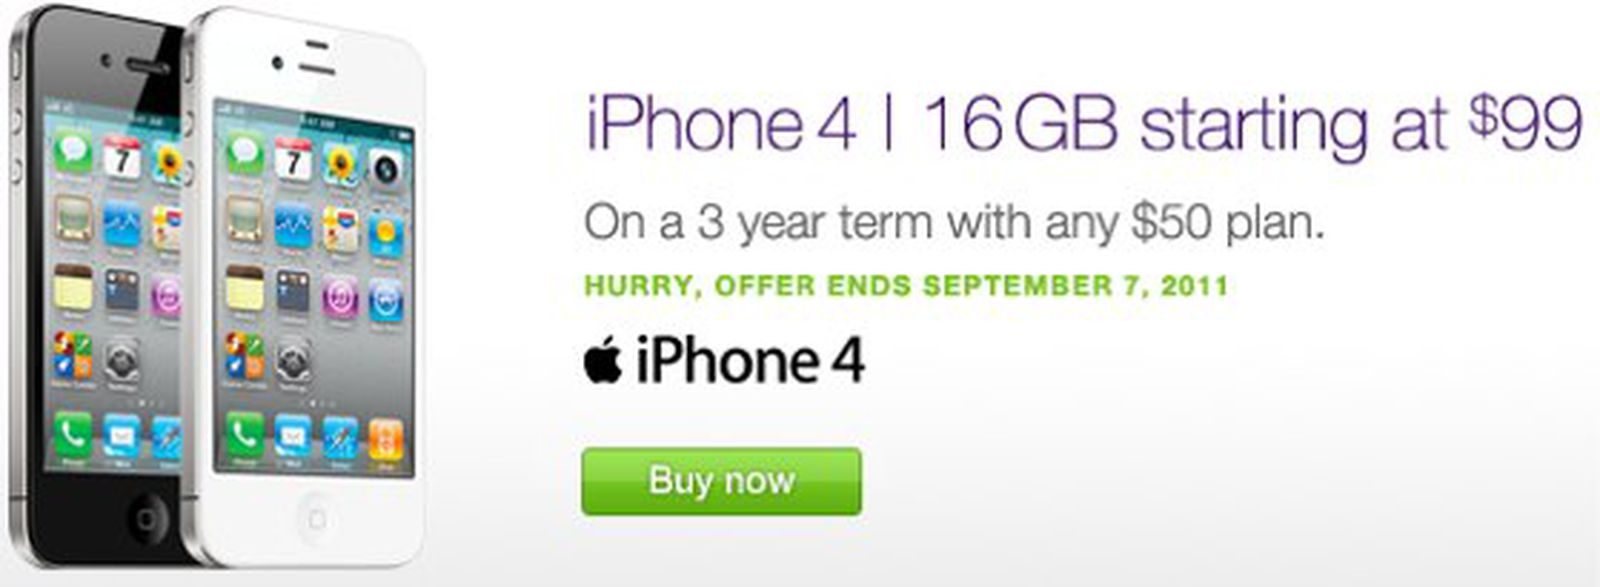 Iphone Price Cuts Free 3gs From Best Buy And 99 Iphone 4 From Telus Macrumors